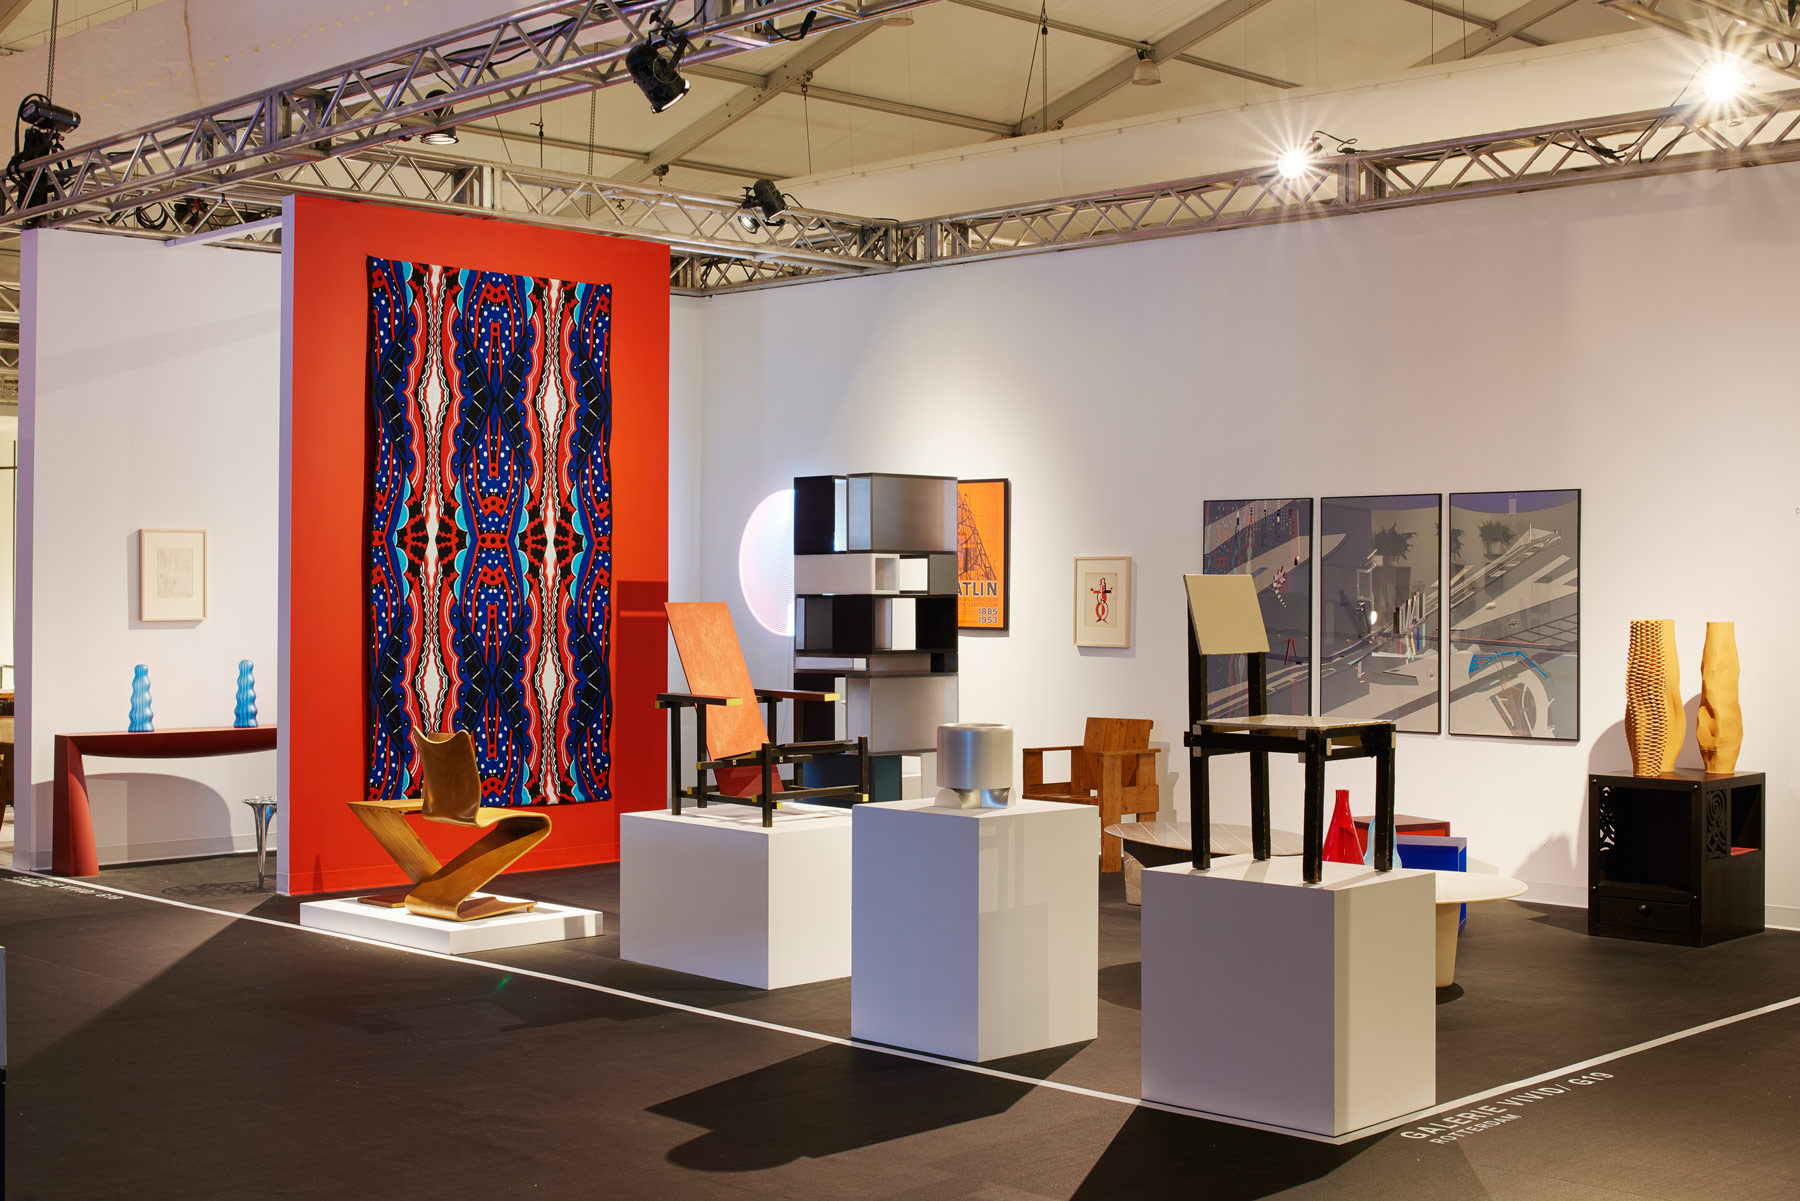 Le Corbusier Rietveld And More From Day Two Of Design Miami